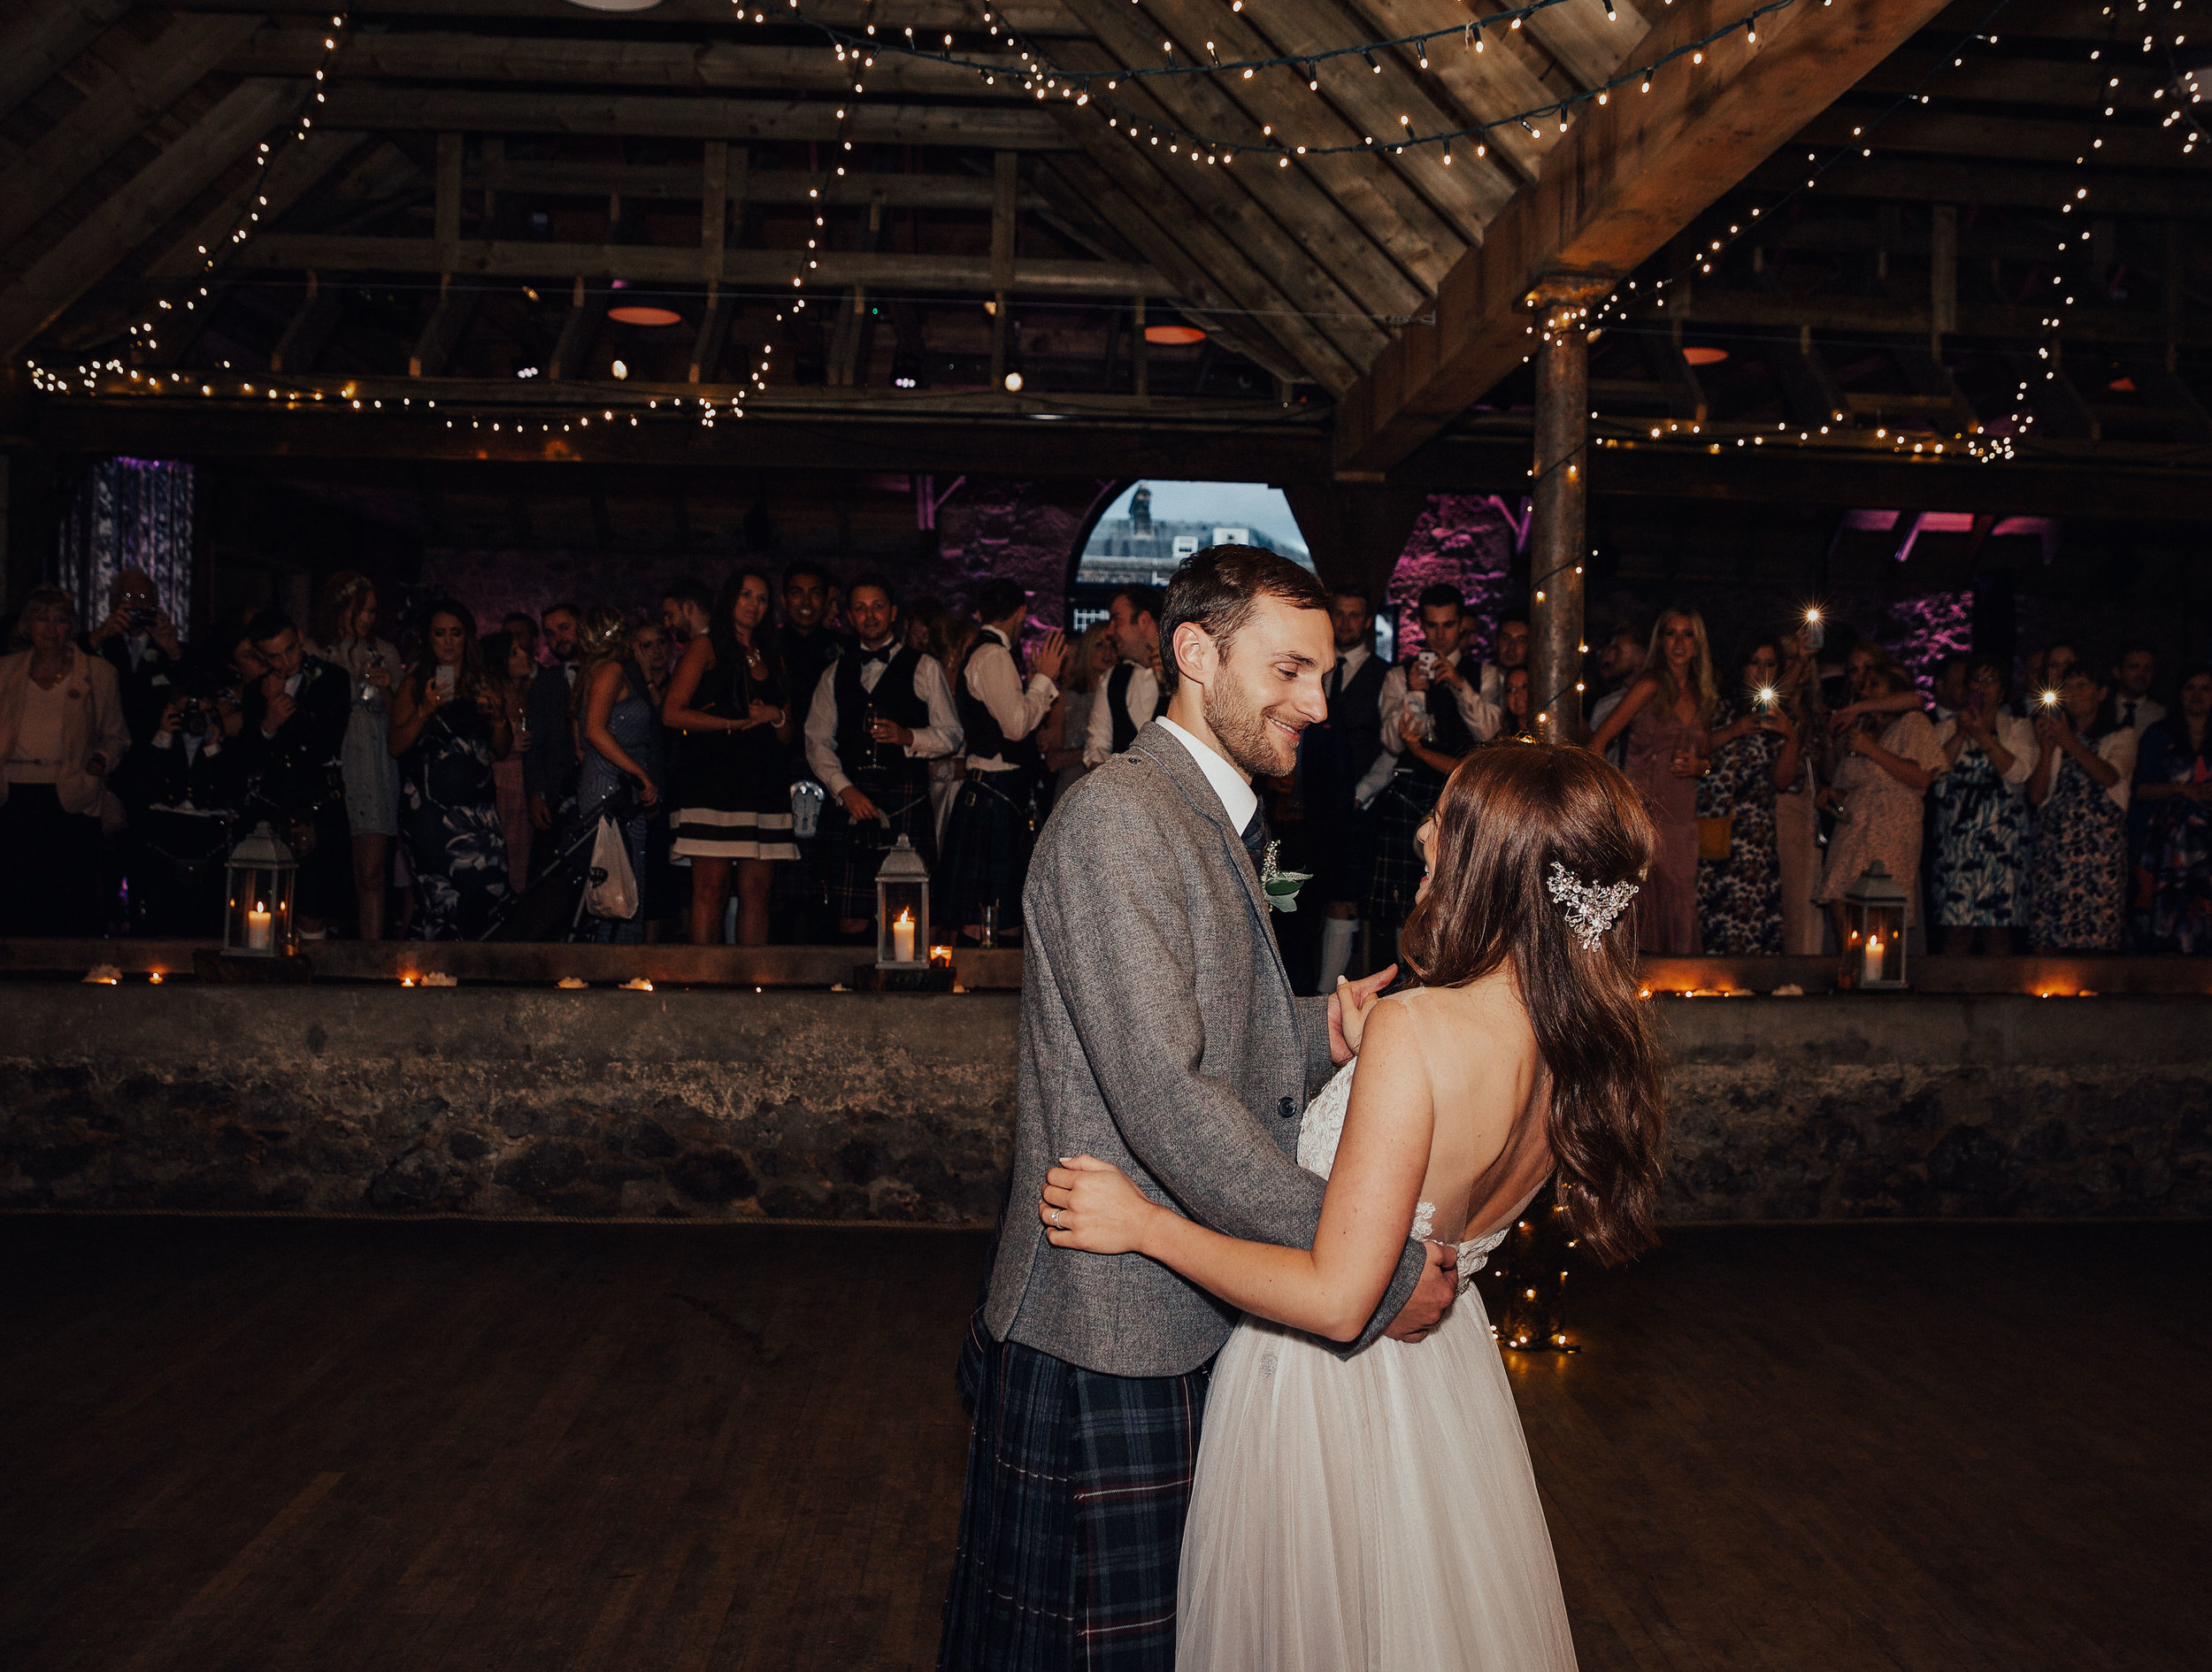 BYRE_AT_INCHYRA_WEDDING_PHOTOGRAPHER_PJ_PHILLIPS_PHOTOGRAPHY_KAYLEIGH_ANDREW_159.jpg